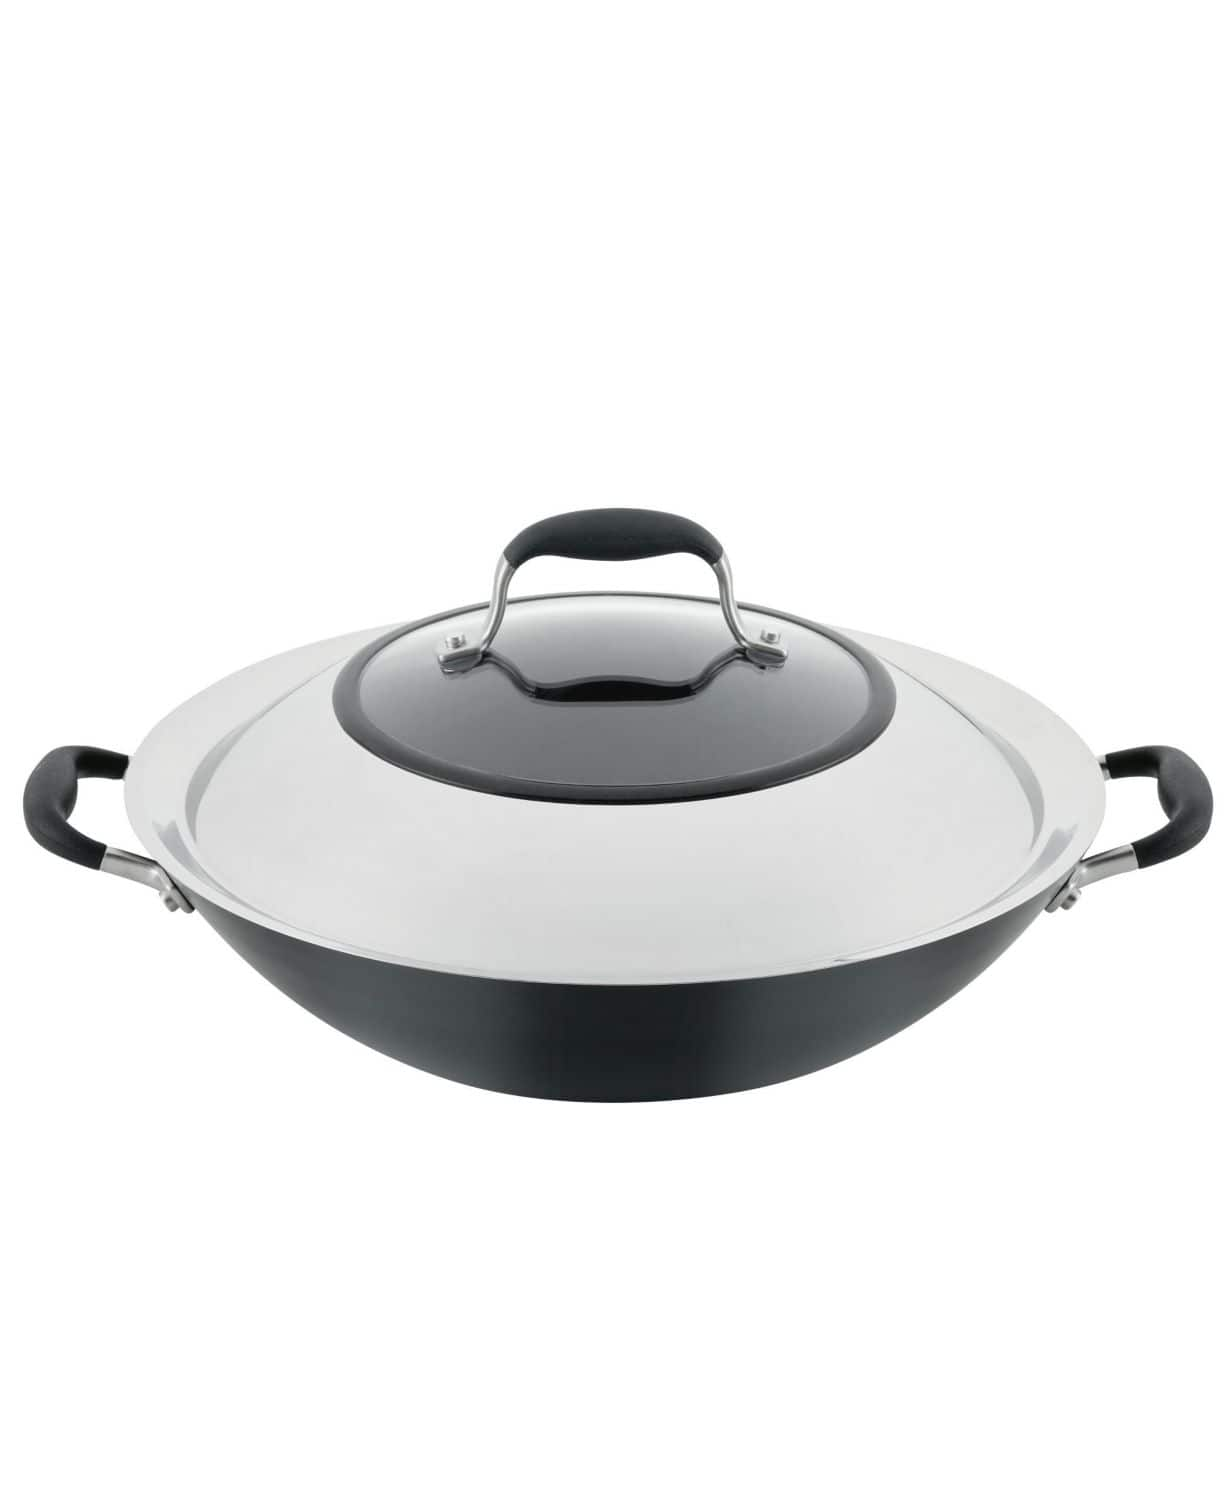 "Macy's - Anolon  Hard-Anodized 14"" Nonstick Wok with Side Handles $50.99"